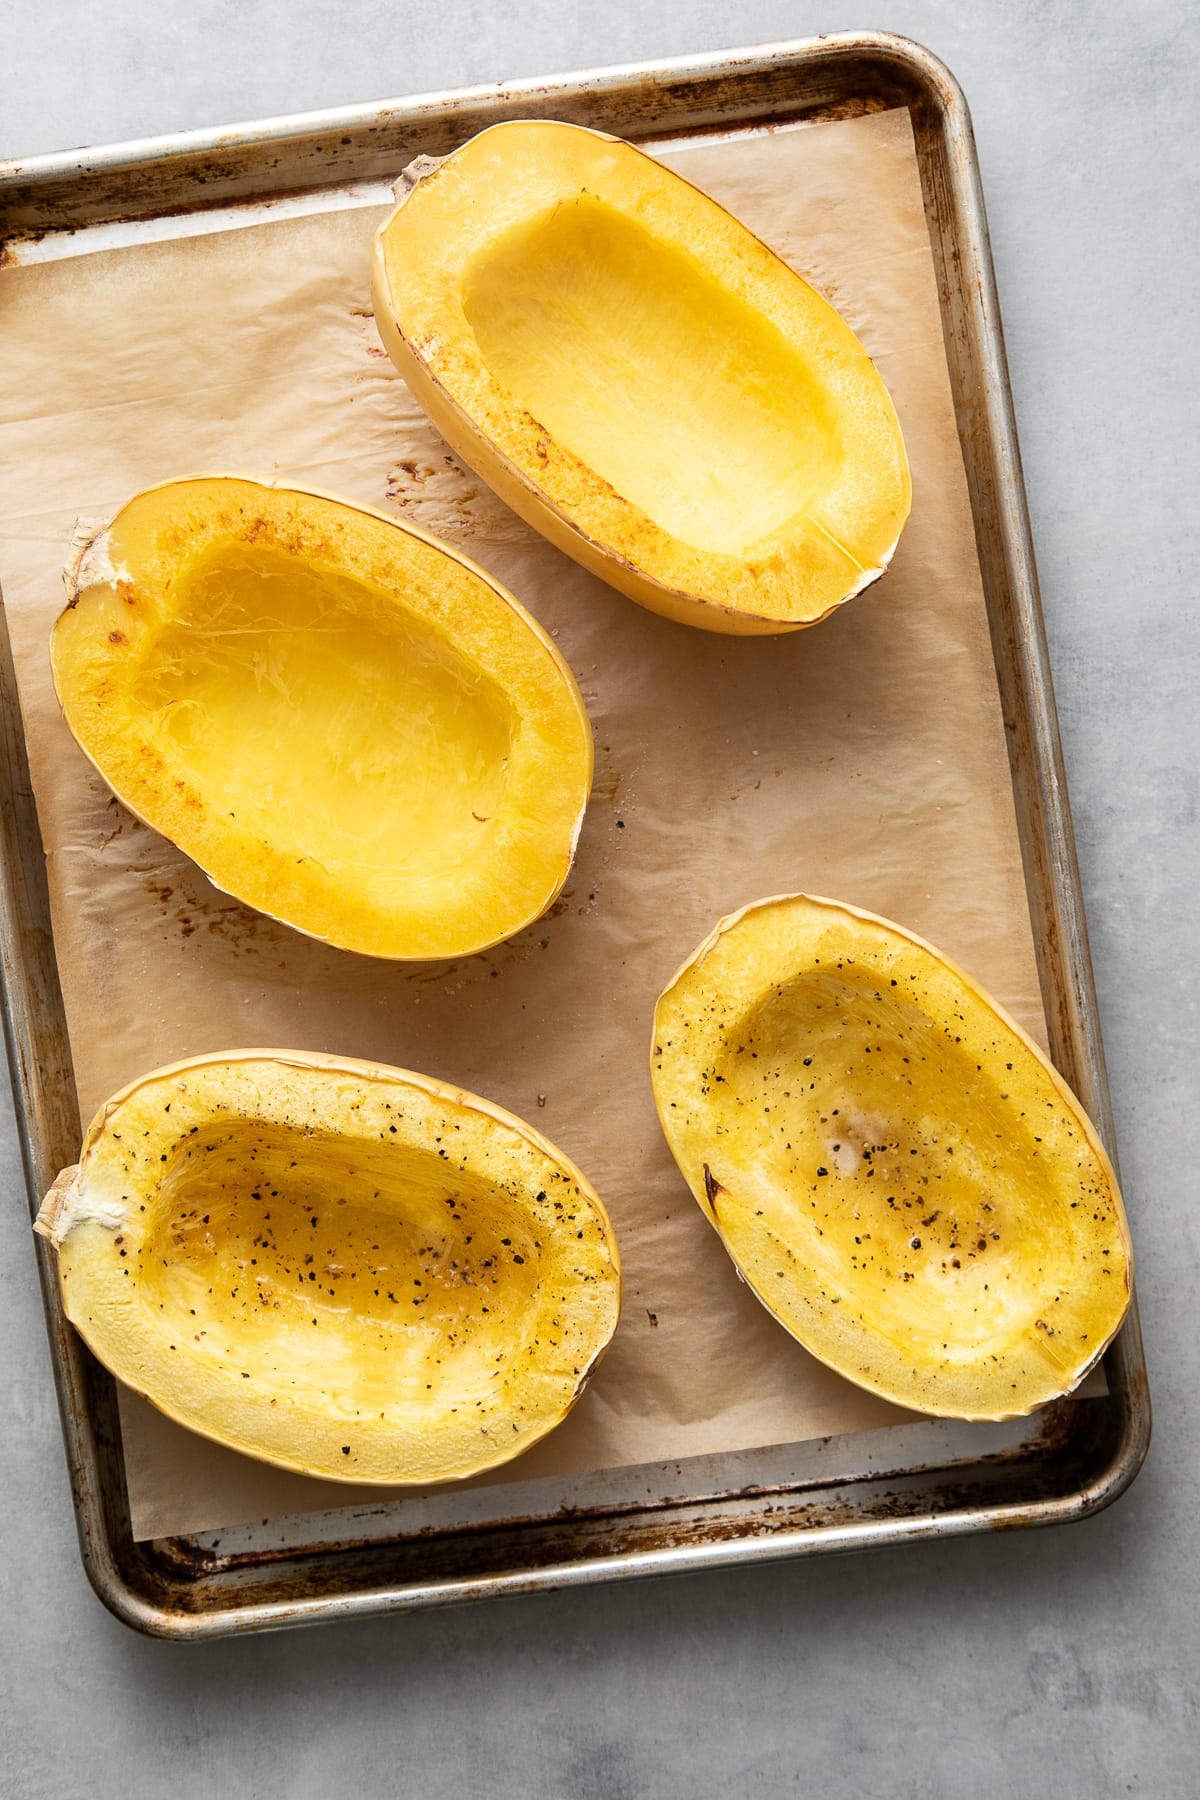 top down view showing freshly made spaghetti squash cooked 2 ways on a baking sheet.